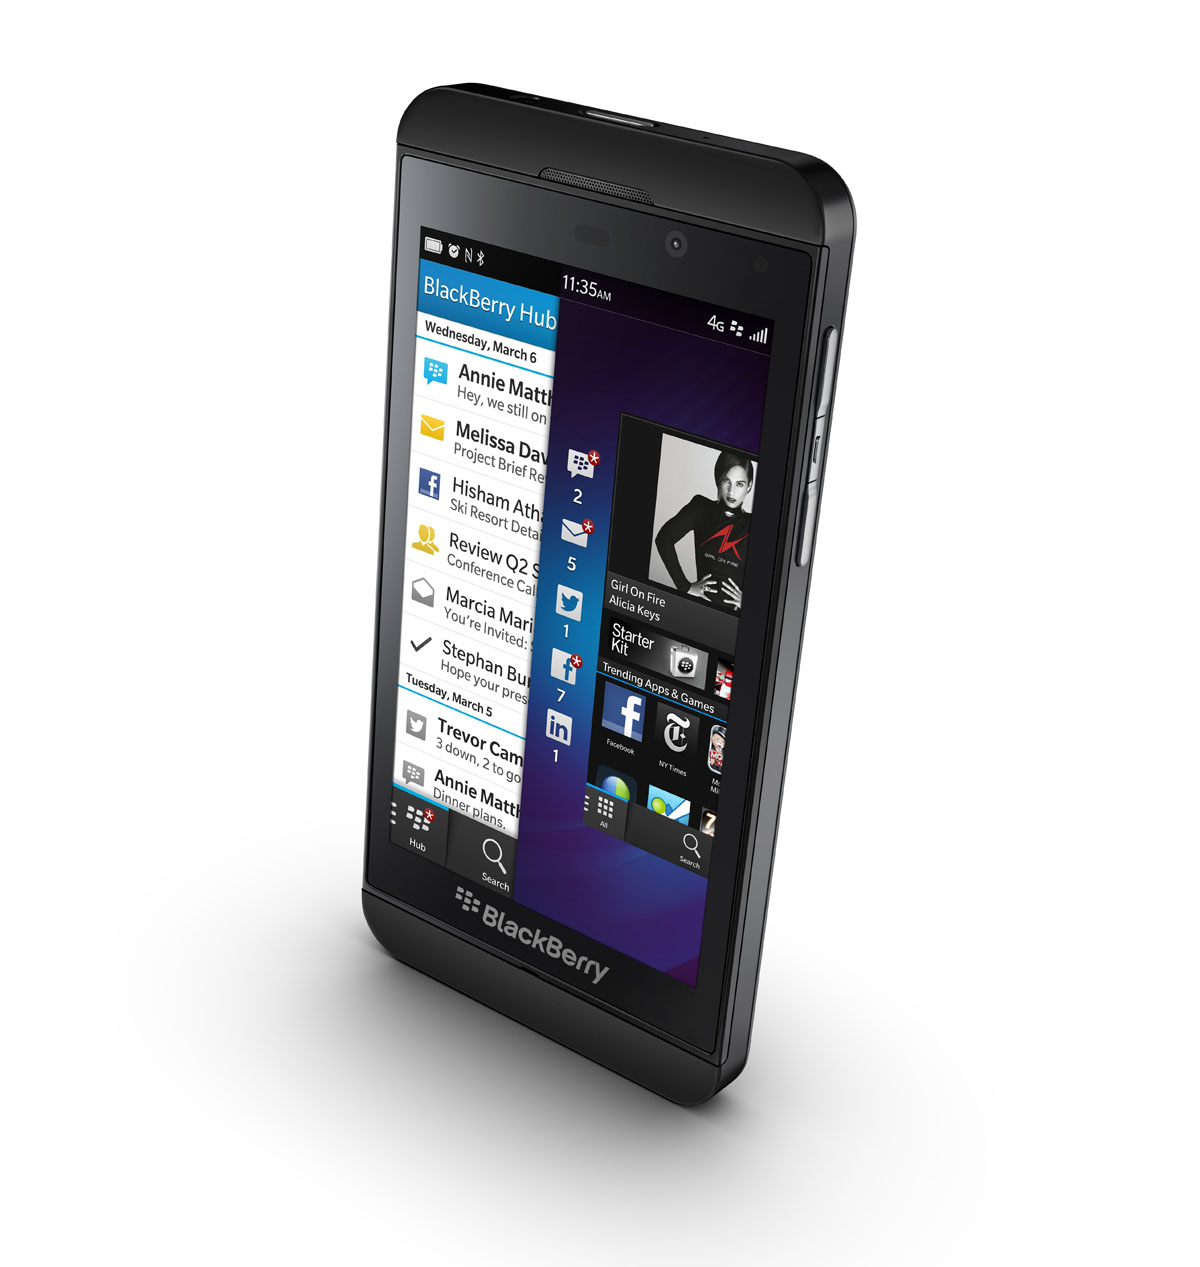 BlackBerry's return: Unboxing the Z10